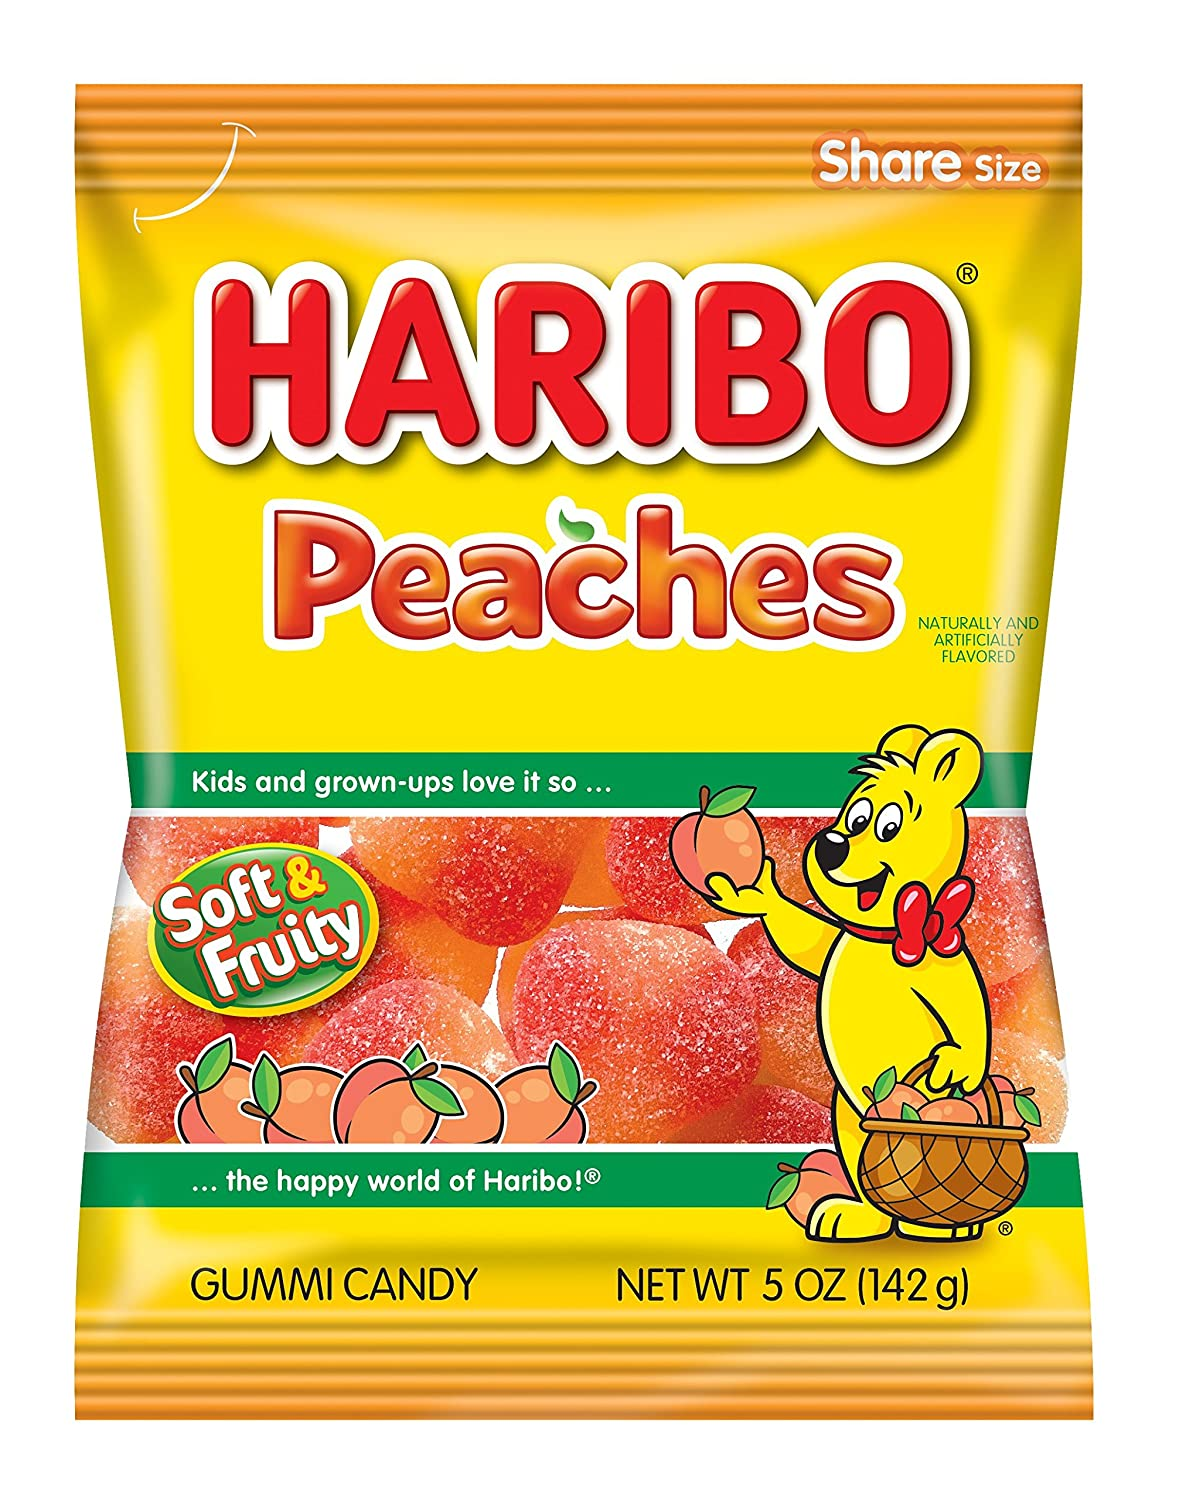 Forum on this topic: Put Down the Haribo: Sugars Affecting More , put-down-the-haribo-sugars-affecting-more/